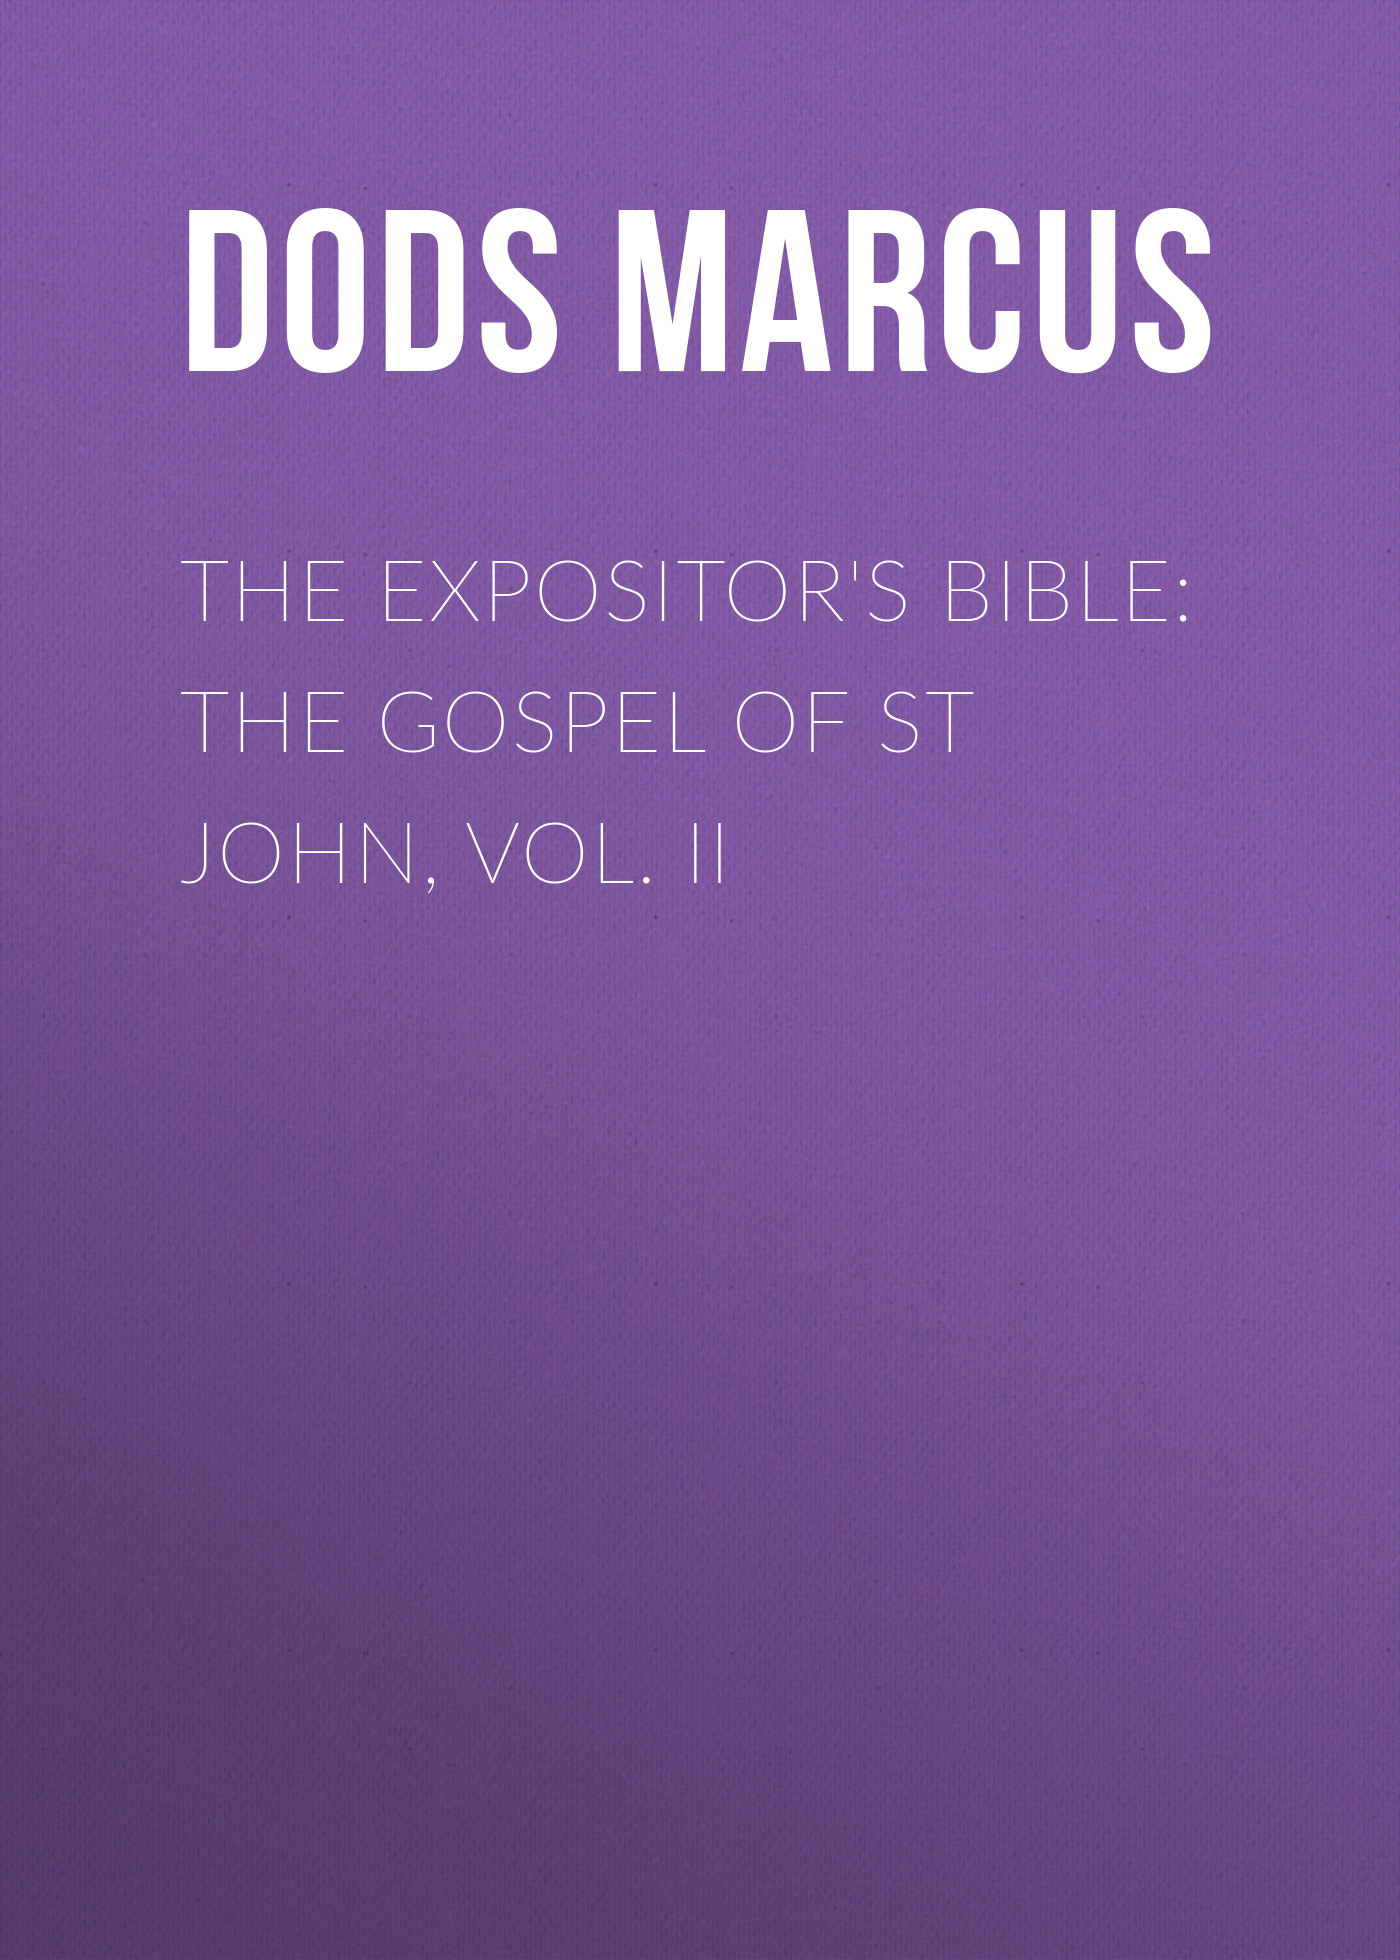 Dods Marcus The Expositor's Bible: The Gospel of St John, Vol. II the wisdom of john paul ii